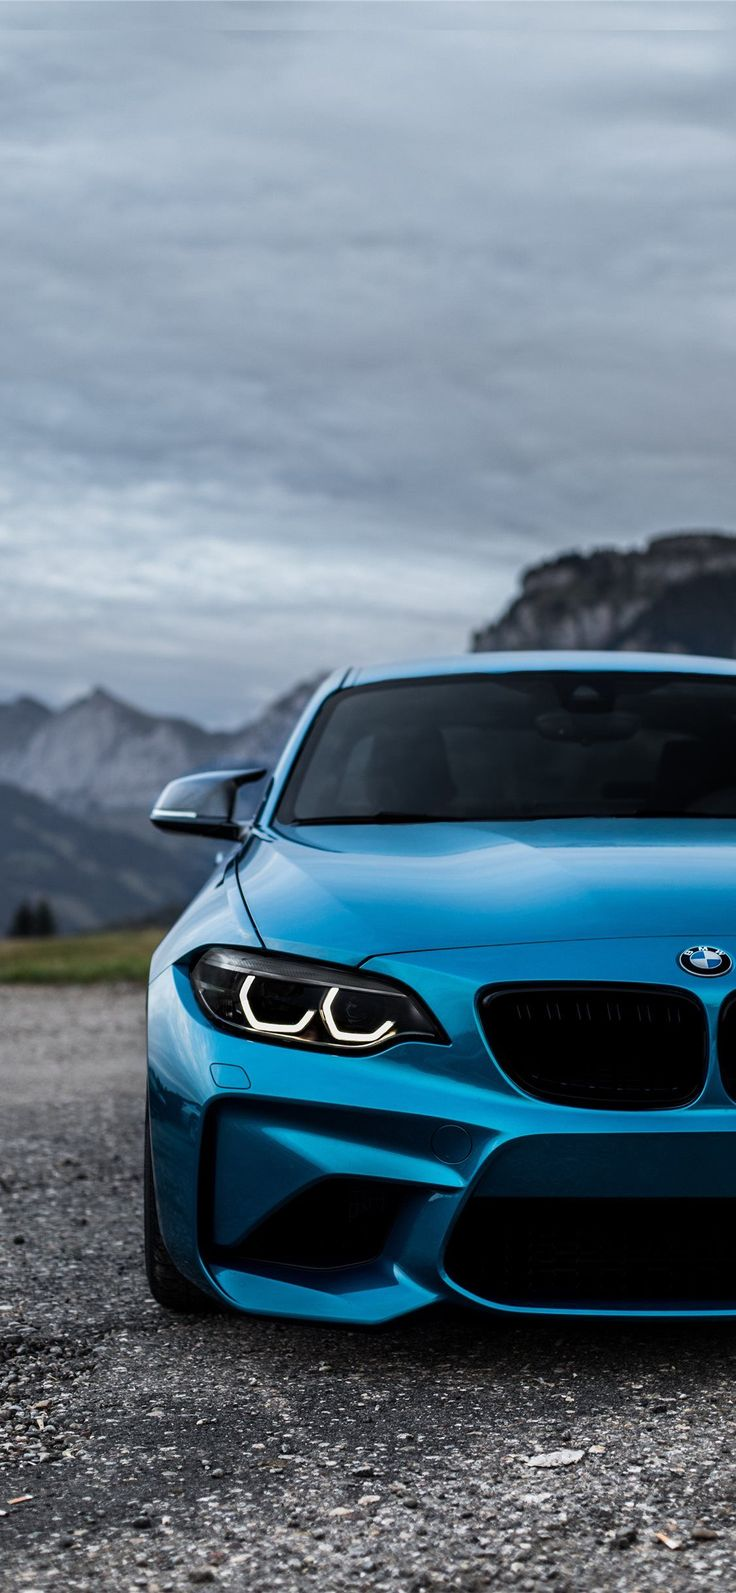 Iphone Wallpaper in 2020 Bmw wallpapers, Car iphone